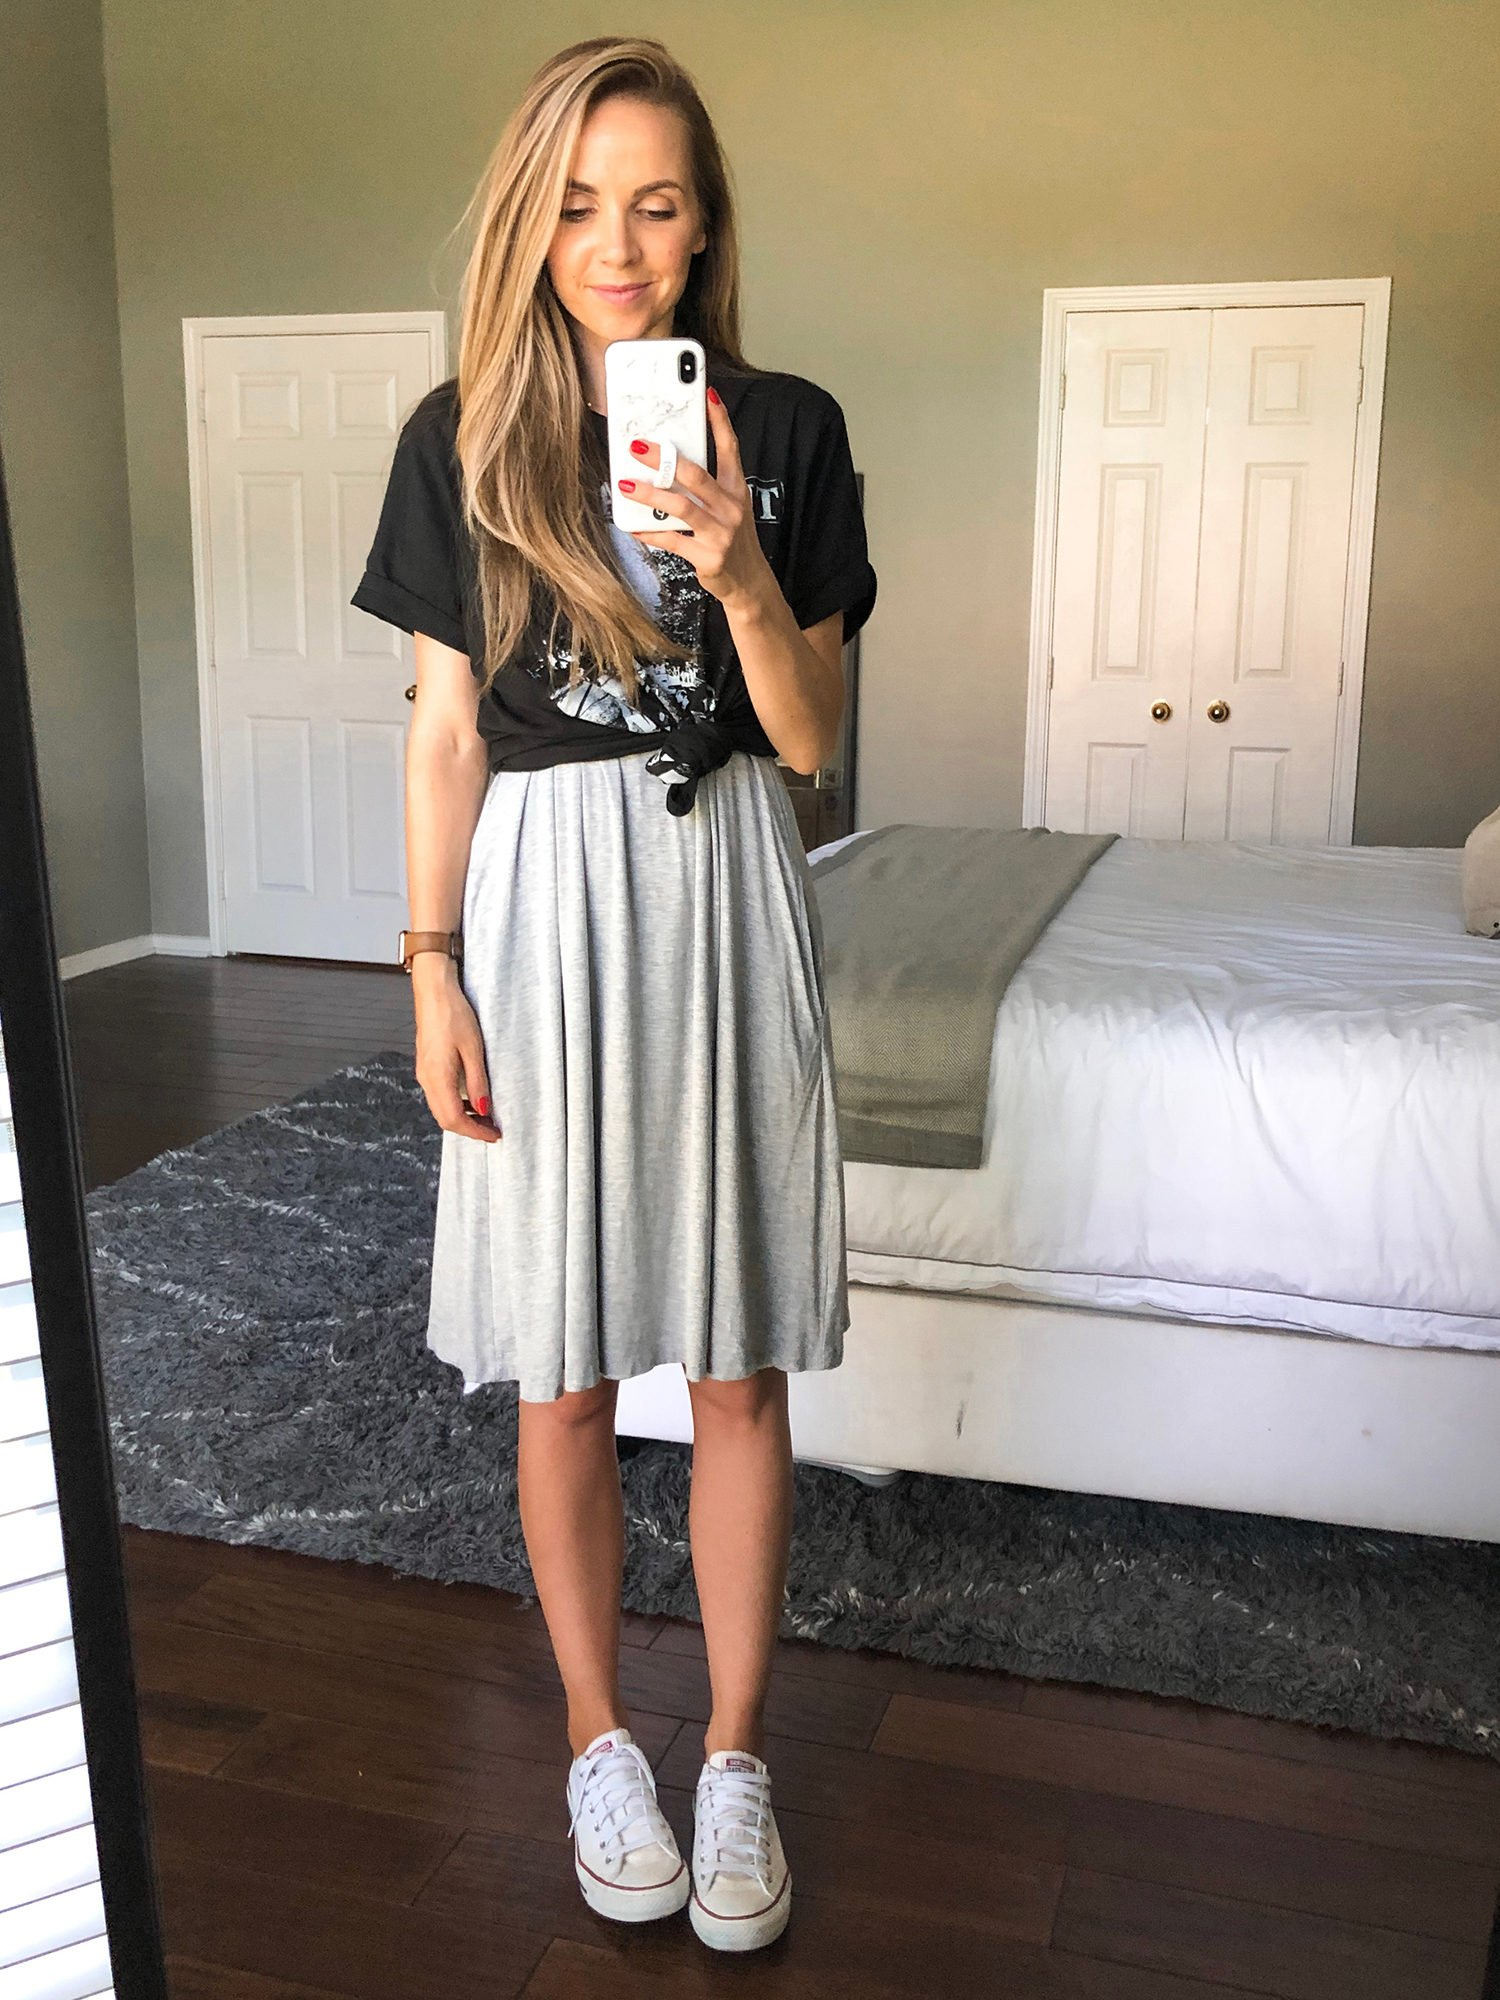 graphic tee with gray dress